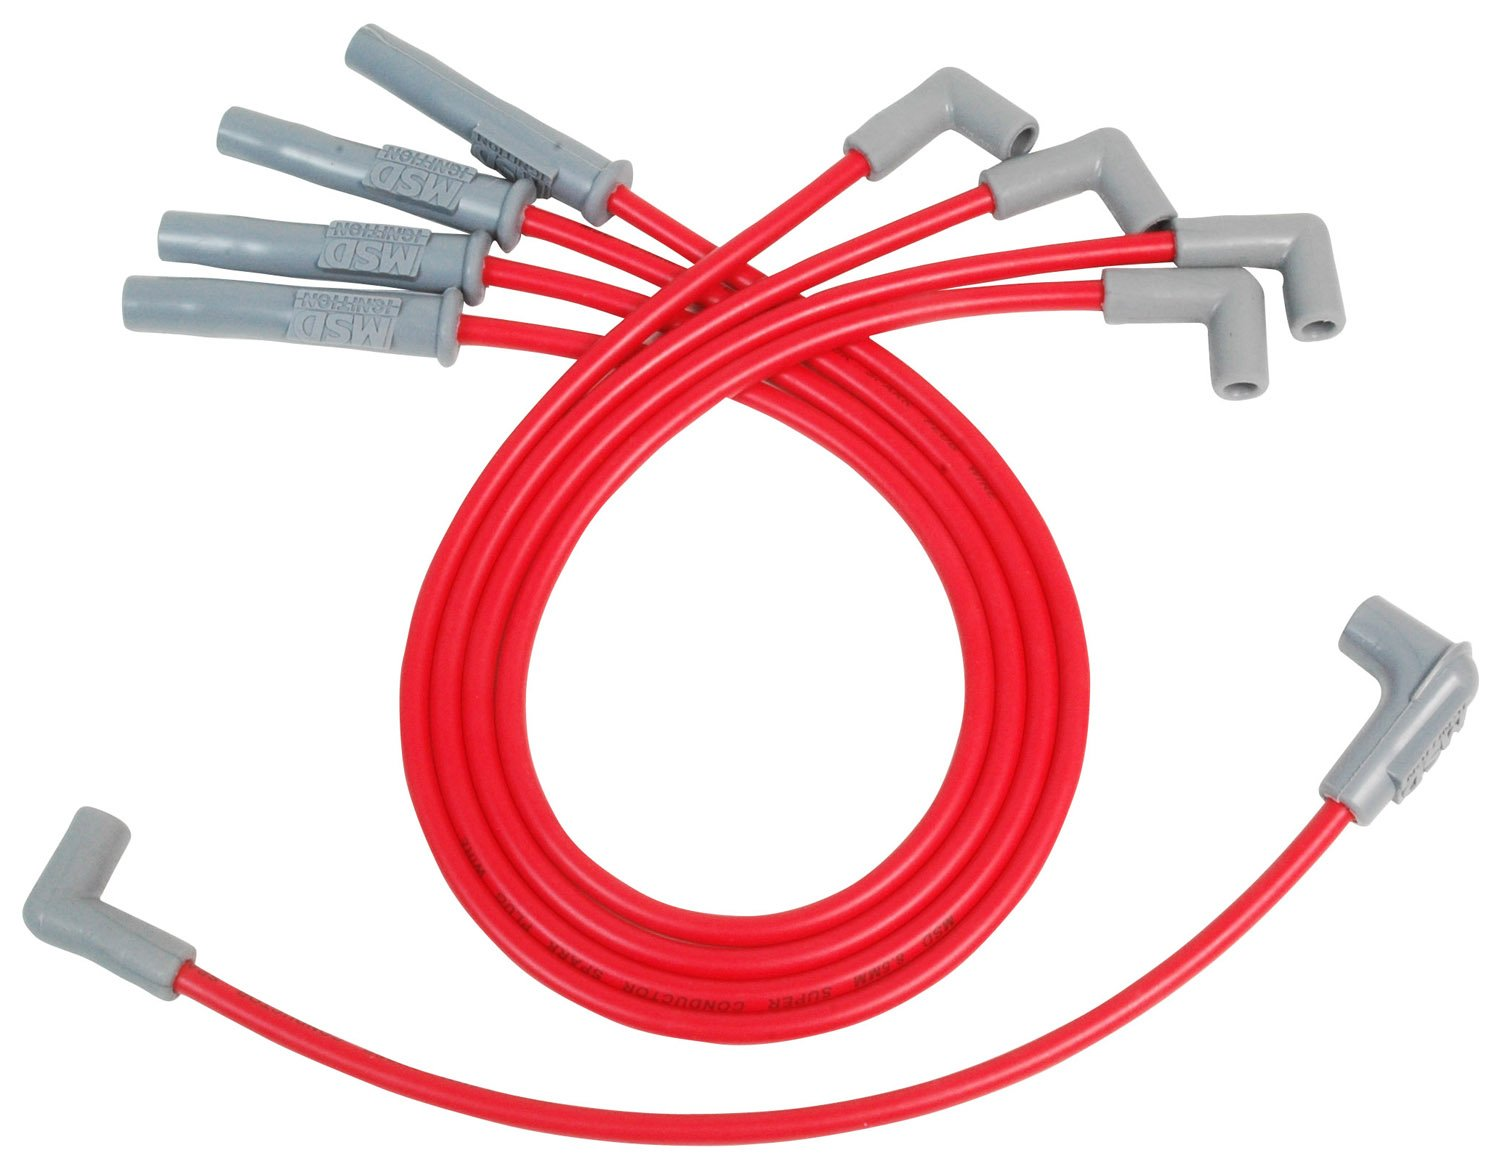 MSD 32079 8.5mm Super Conductor Spark Plug Wire Set for LS1/LS6 Engine by MSD